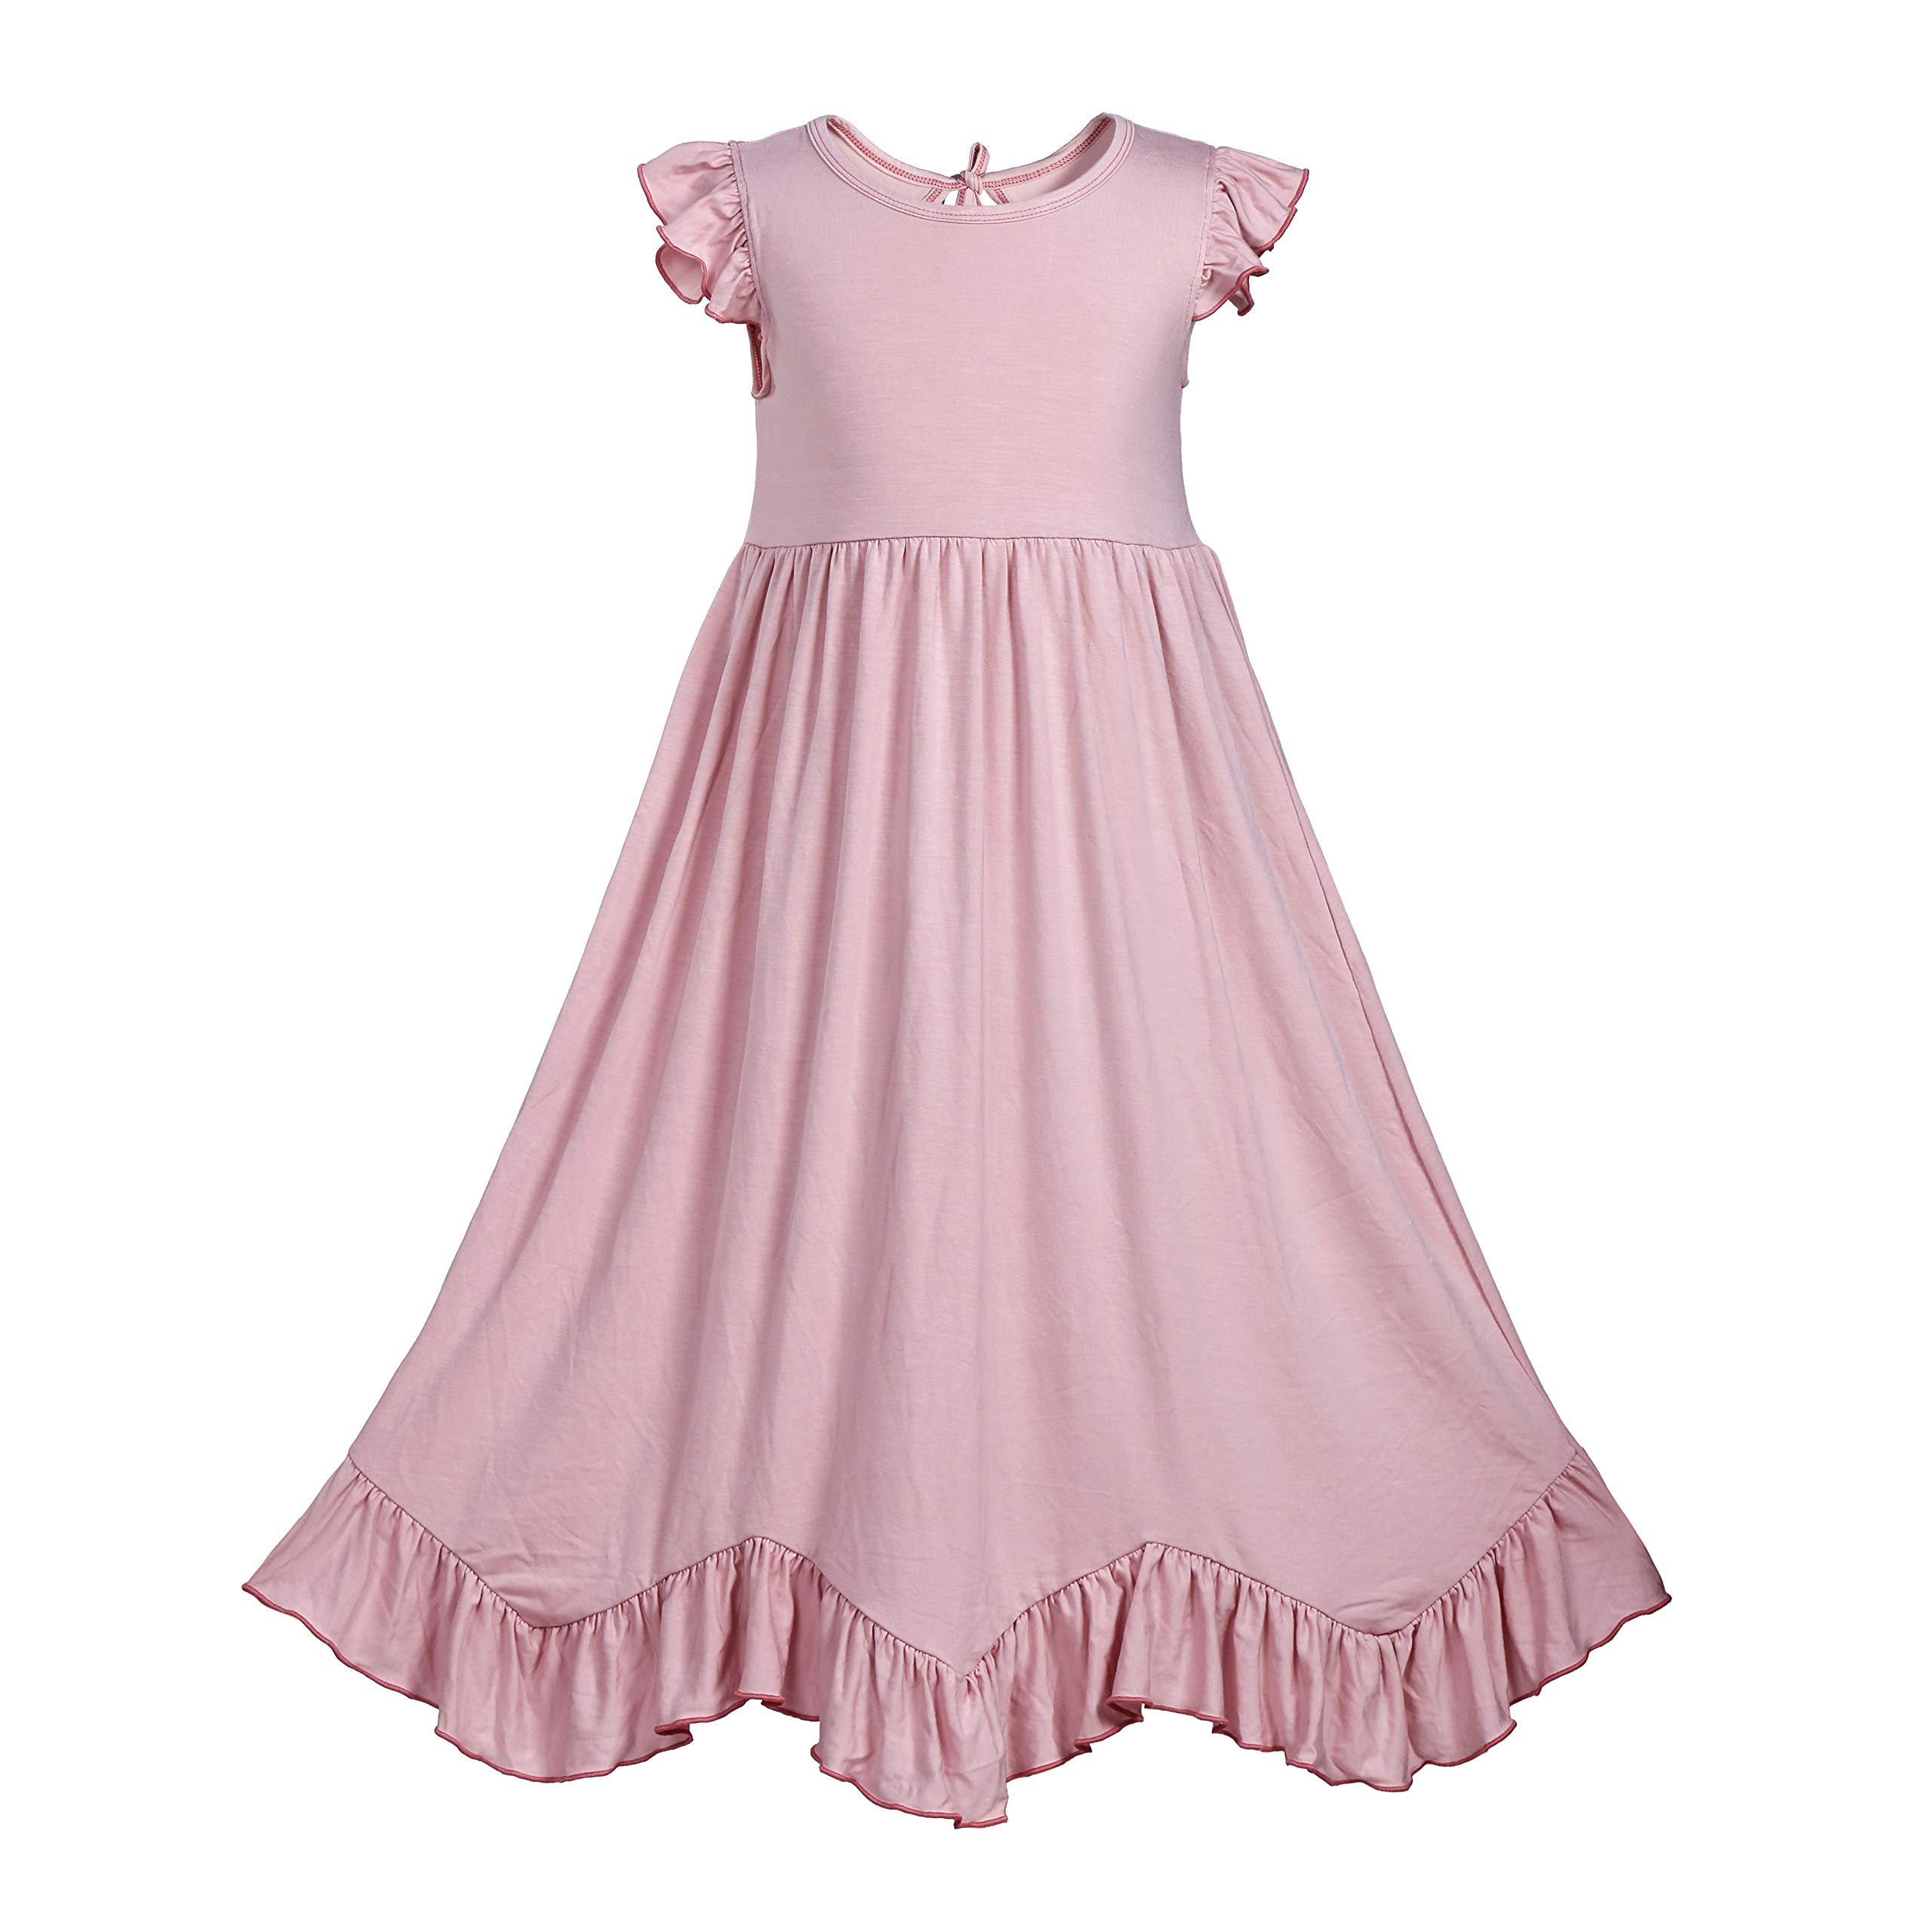 Everweekend Girls Ruffles Maxi Dress Pink Color Halter Lace Fly Sleeve Cotton Party Dress Skirts (Pink-One Layer, Adult)